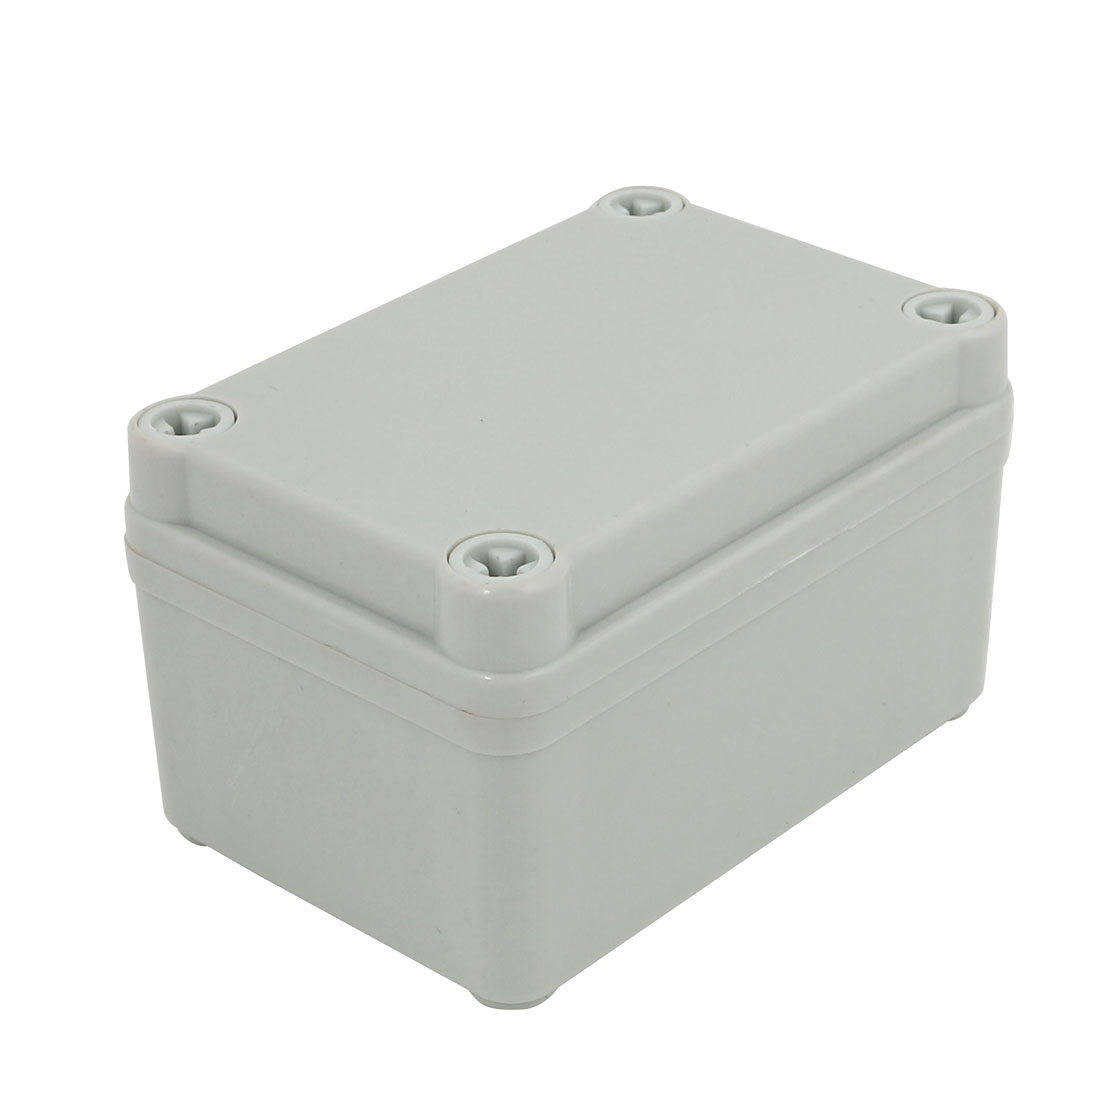 95mm x 65mm x 55mm Electronic ABS Plastic Junction Box Enclosure Case Gray